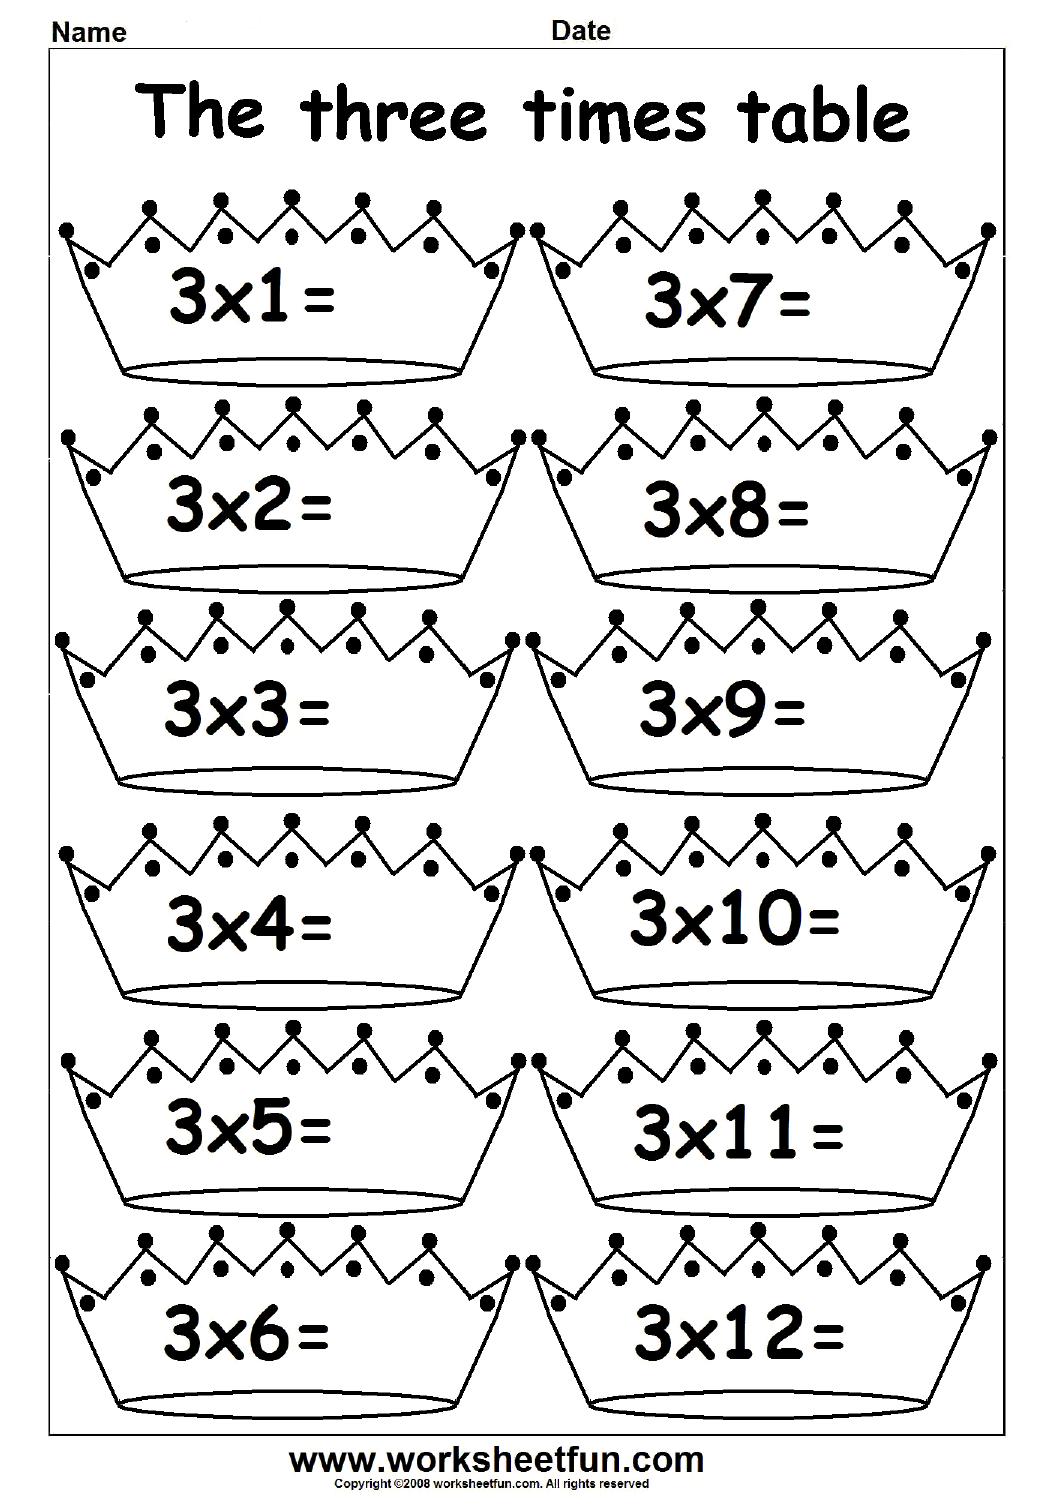 Worksheets Maths Tables 2 To 3 times table worksheet 2 12 tables two worksheets maths 3 4 5 6 7 8 9 worksheetsworksheets for kids multiplication